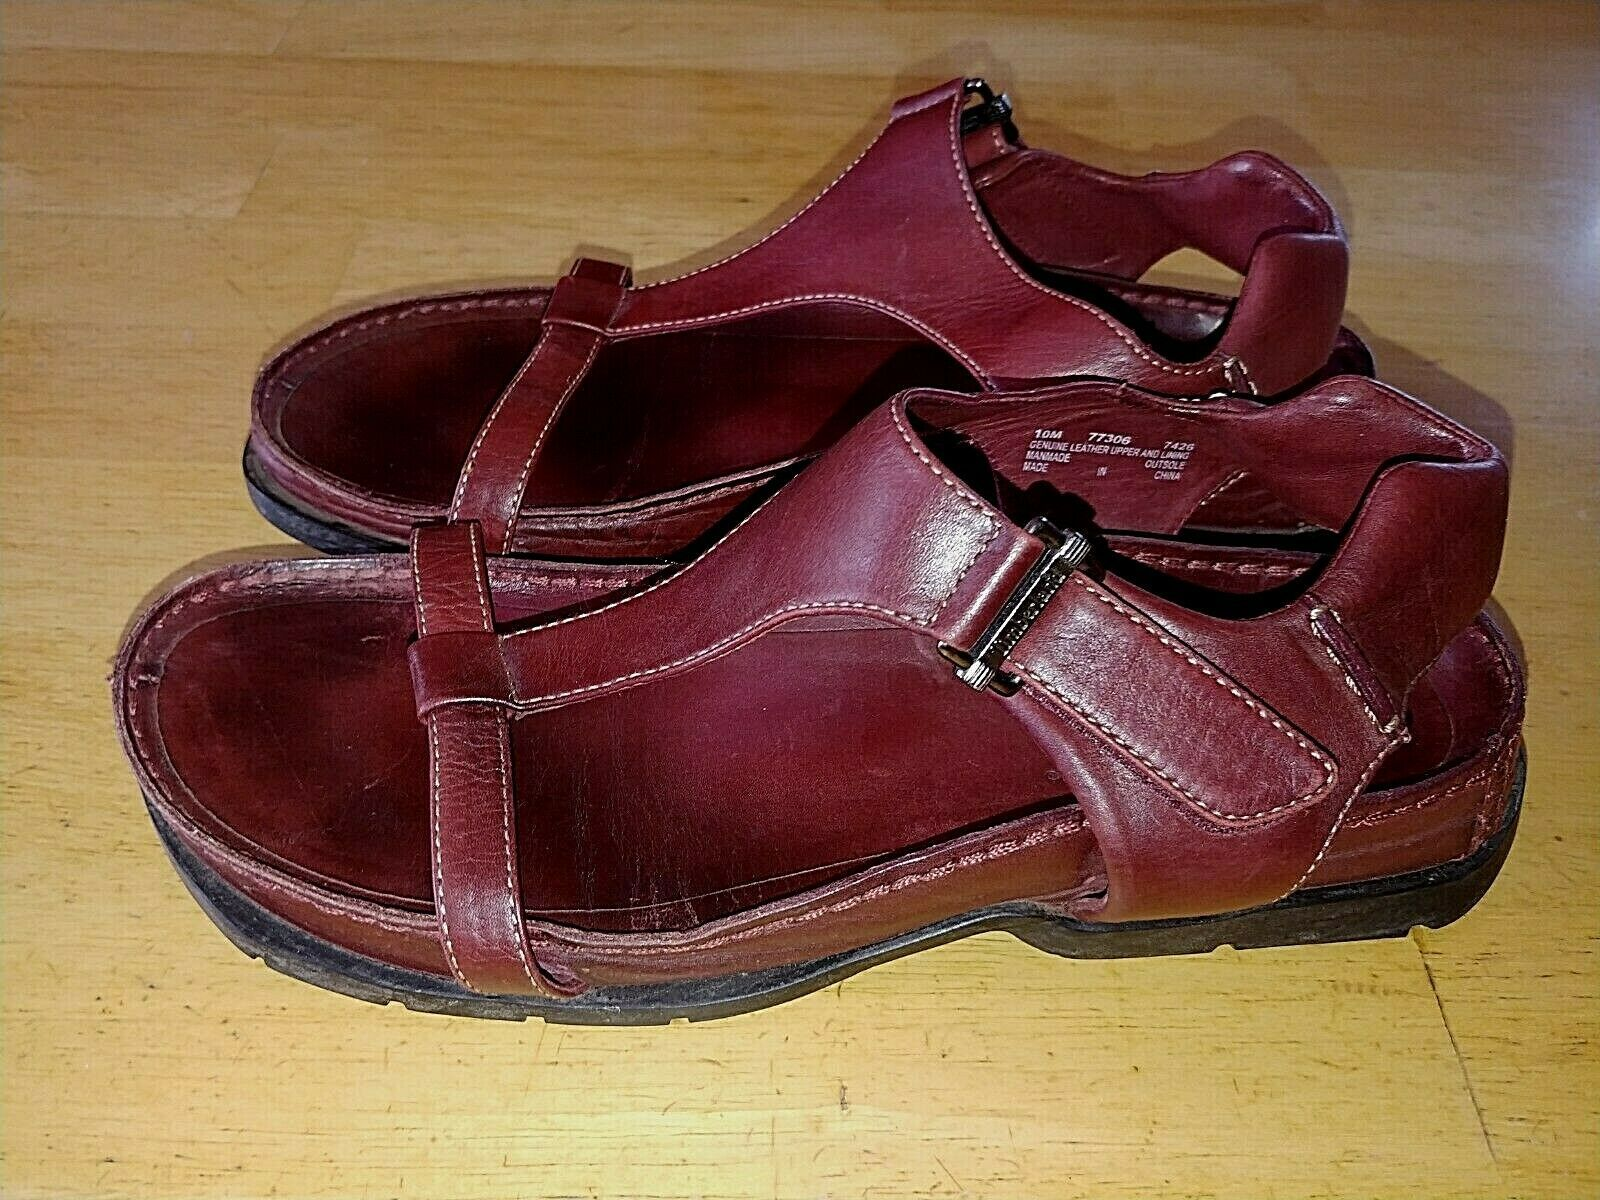 Primary image for TIMBERLAND SMART COMFORT SYSTEM LADIES BURGUNDY LEATHER SANDALS-10M-BARELY WORN